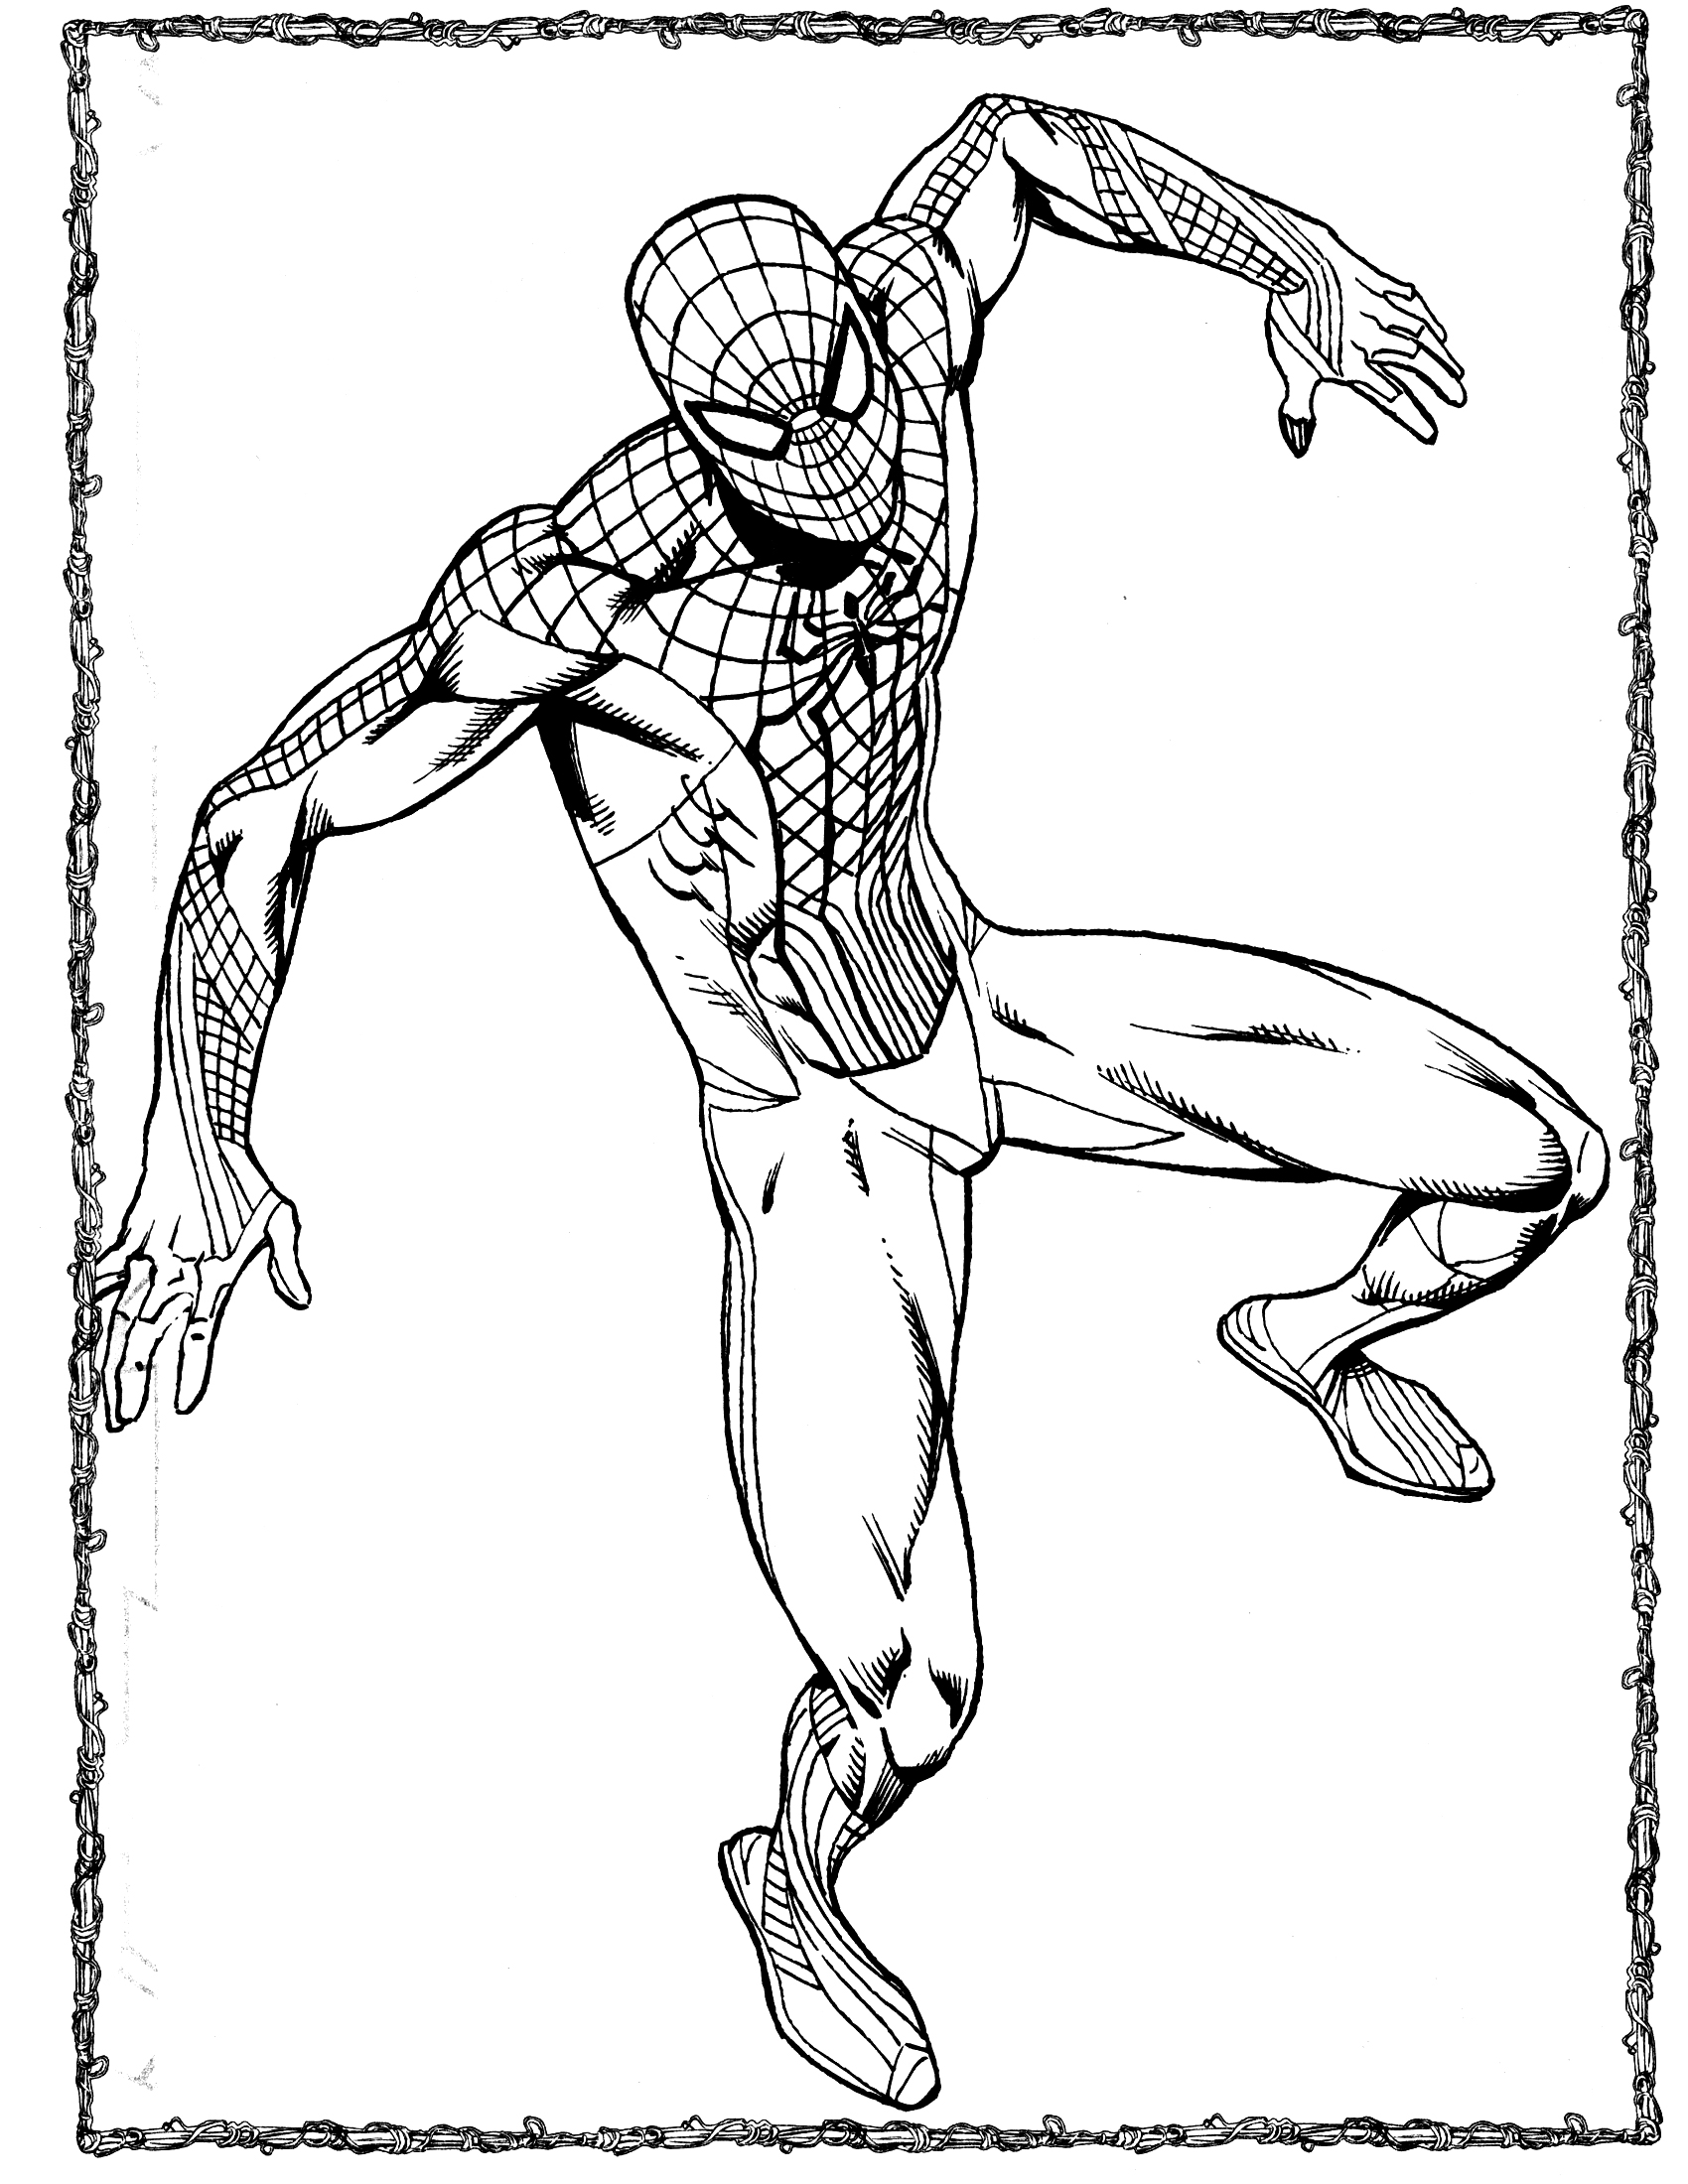 Disegno di spiderman da colorare for Disegni spiderman da colorare